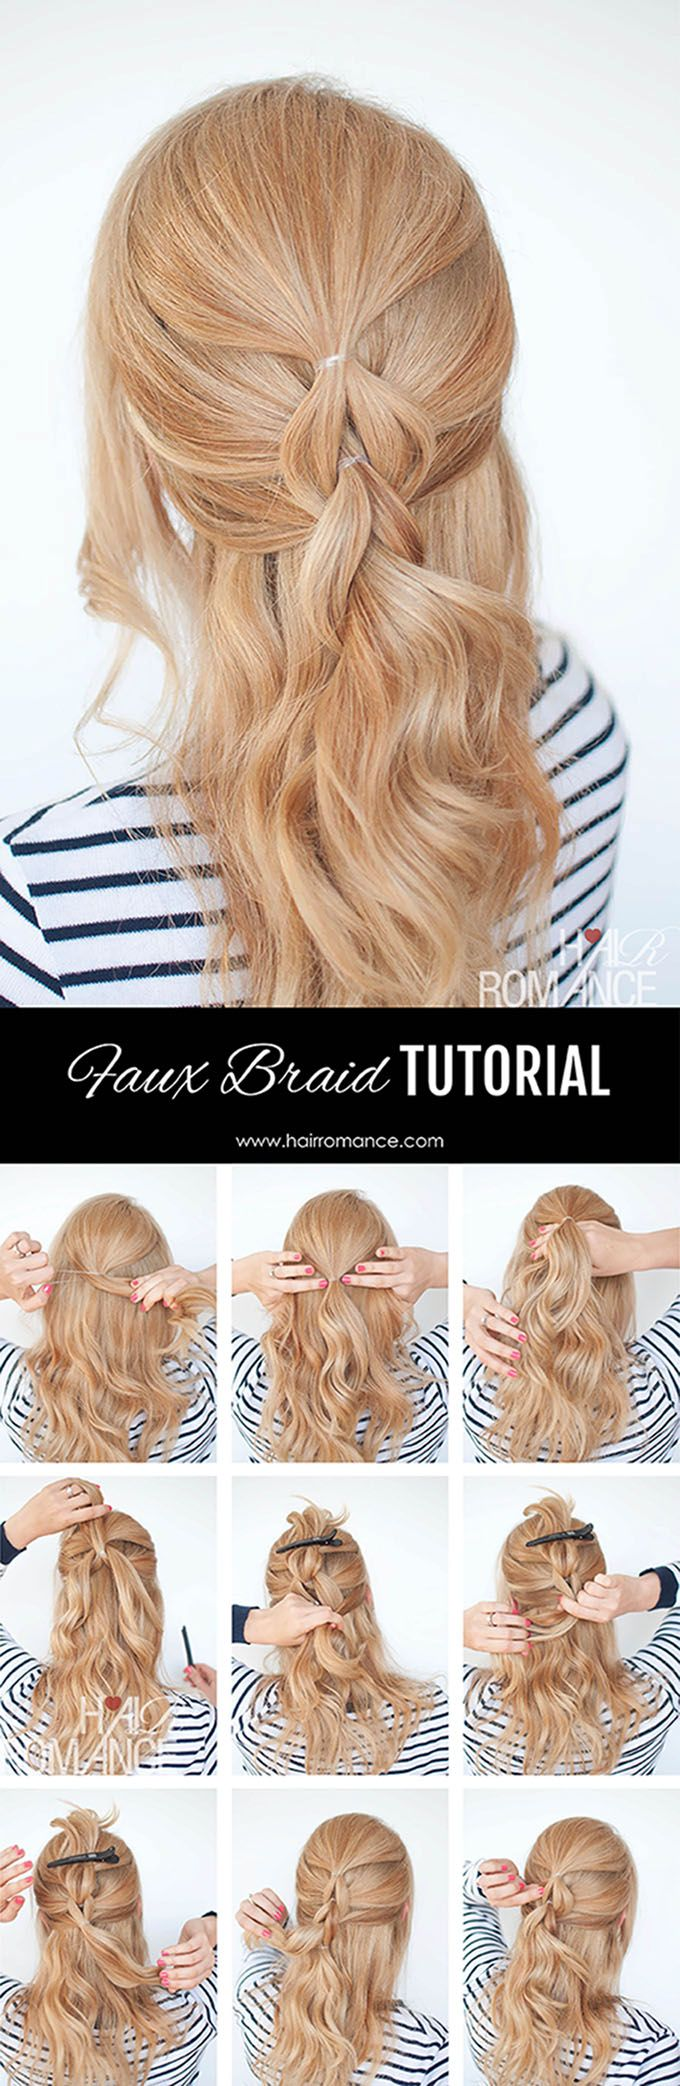 The nobraid braid struggling to braid your own hair this pull